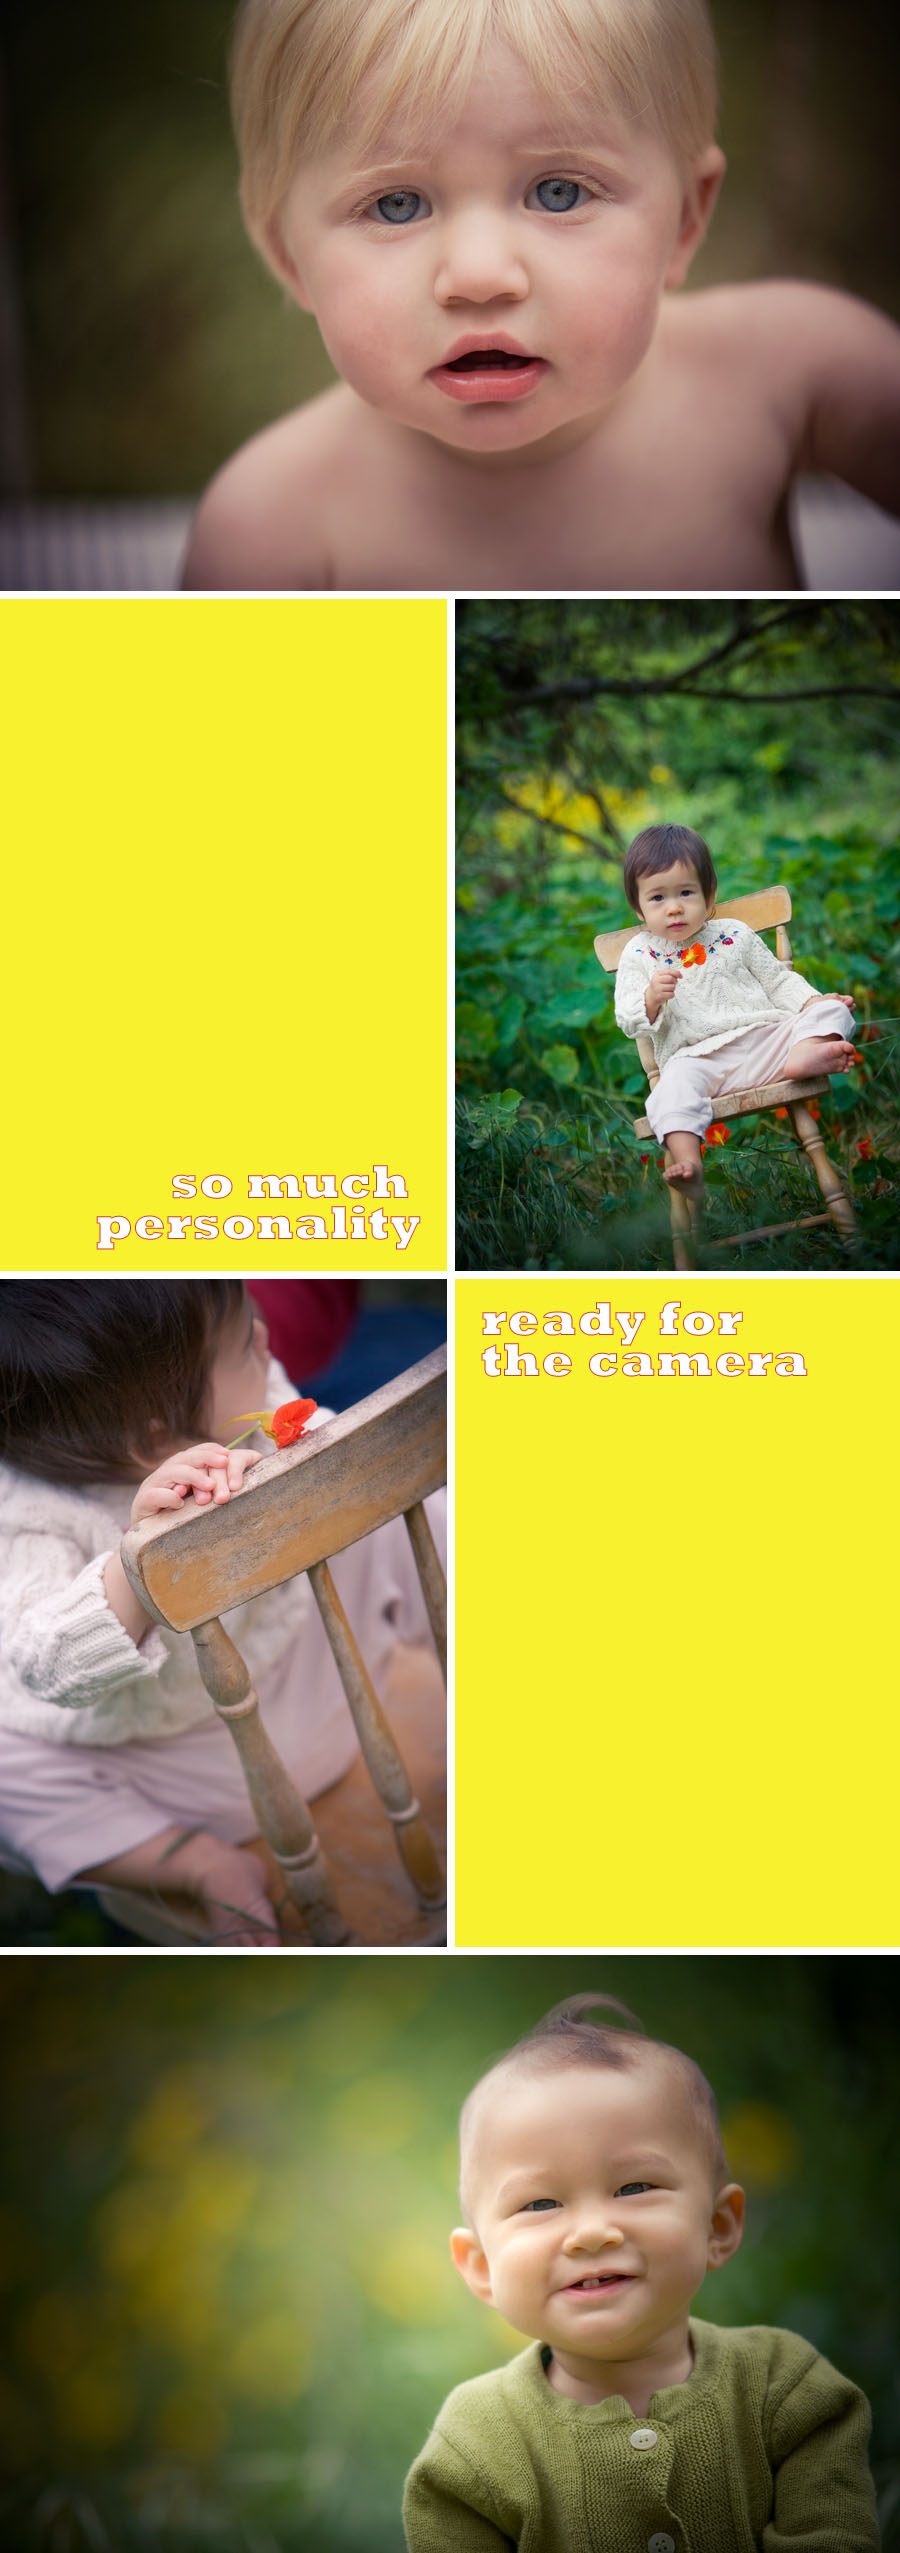 Orange County creative baby and toddler portraits